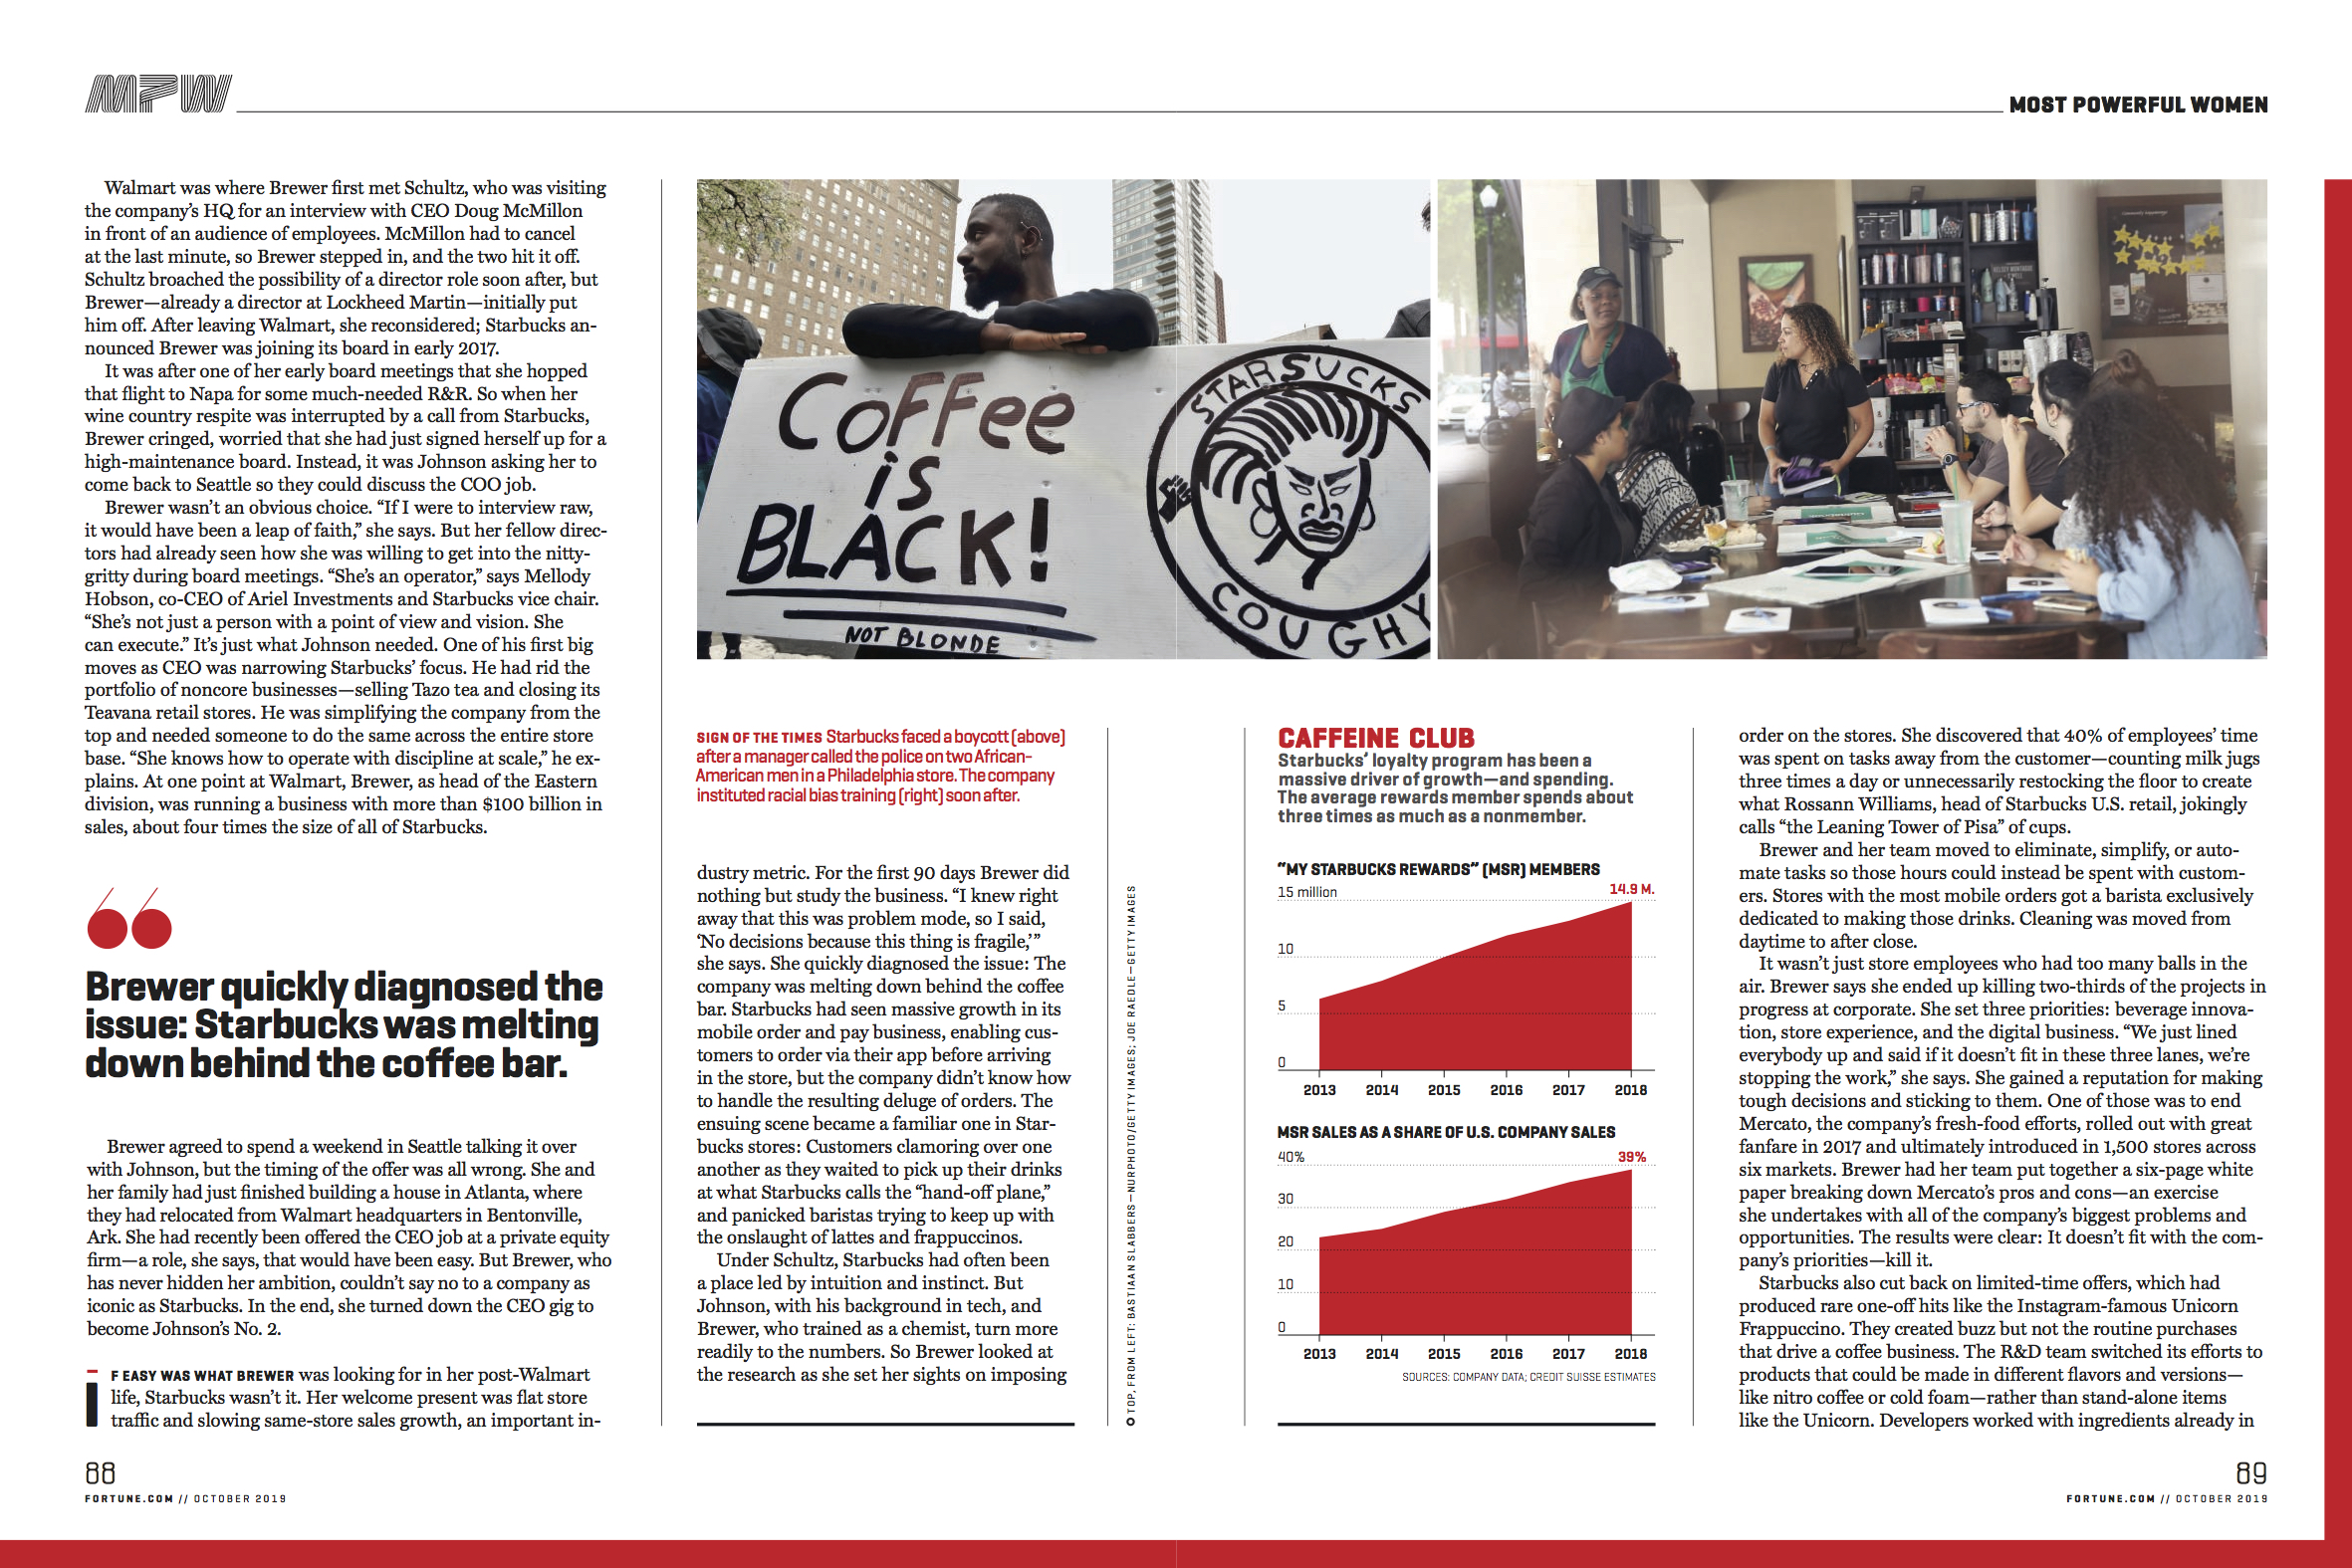 Double tear sheet from Fortune magazine shows Sara Strathas' photos from Starbucks for Fortune